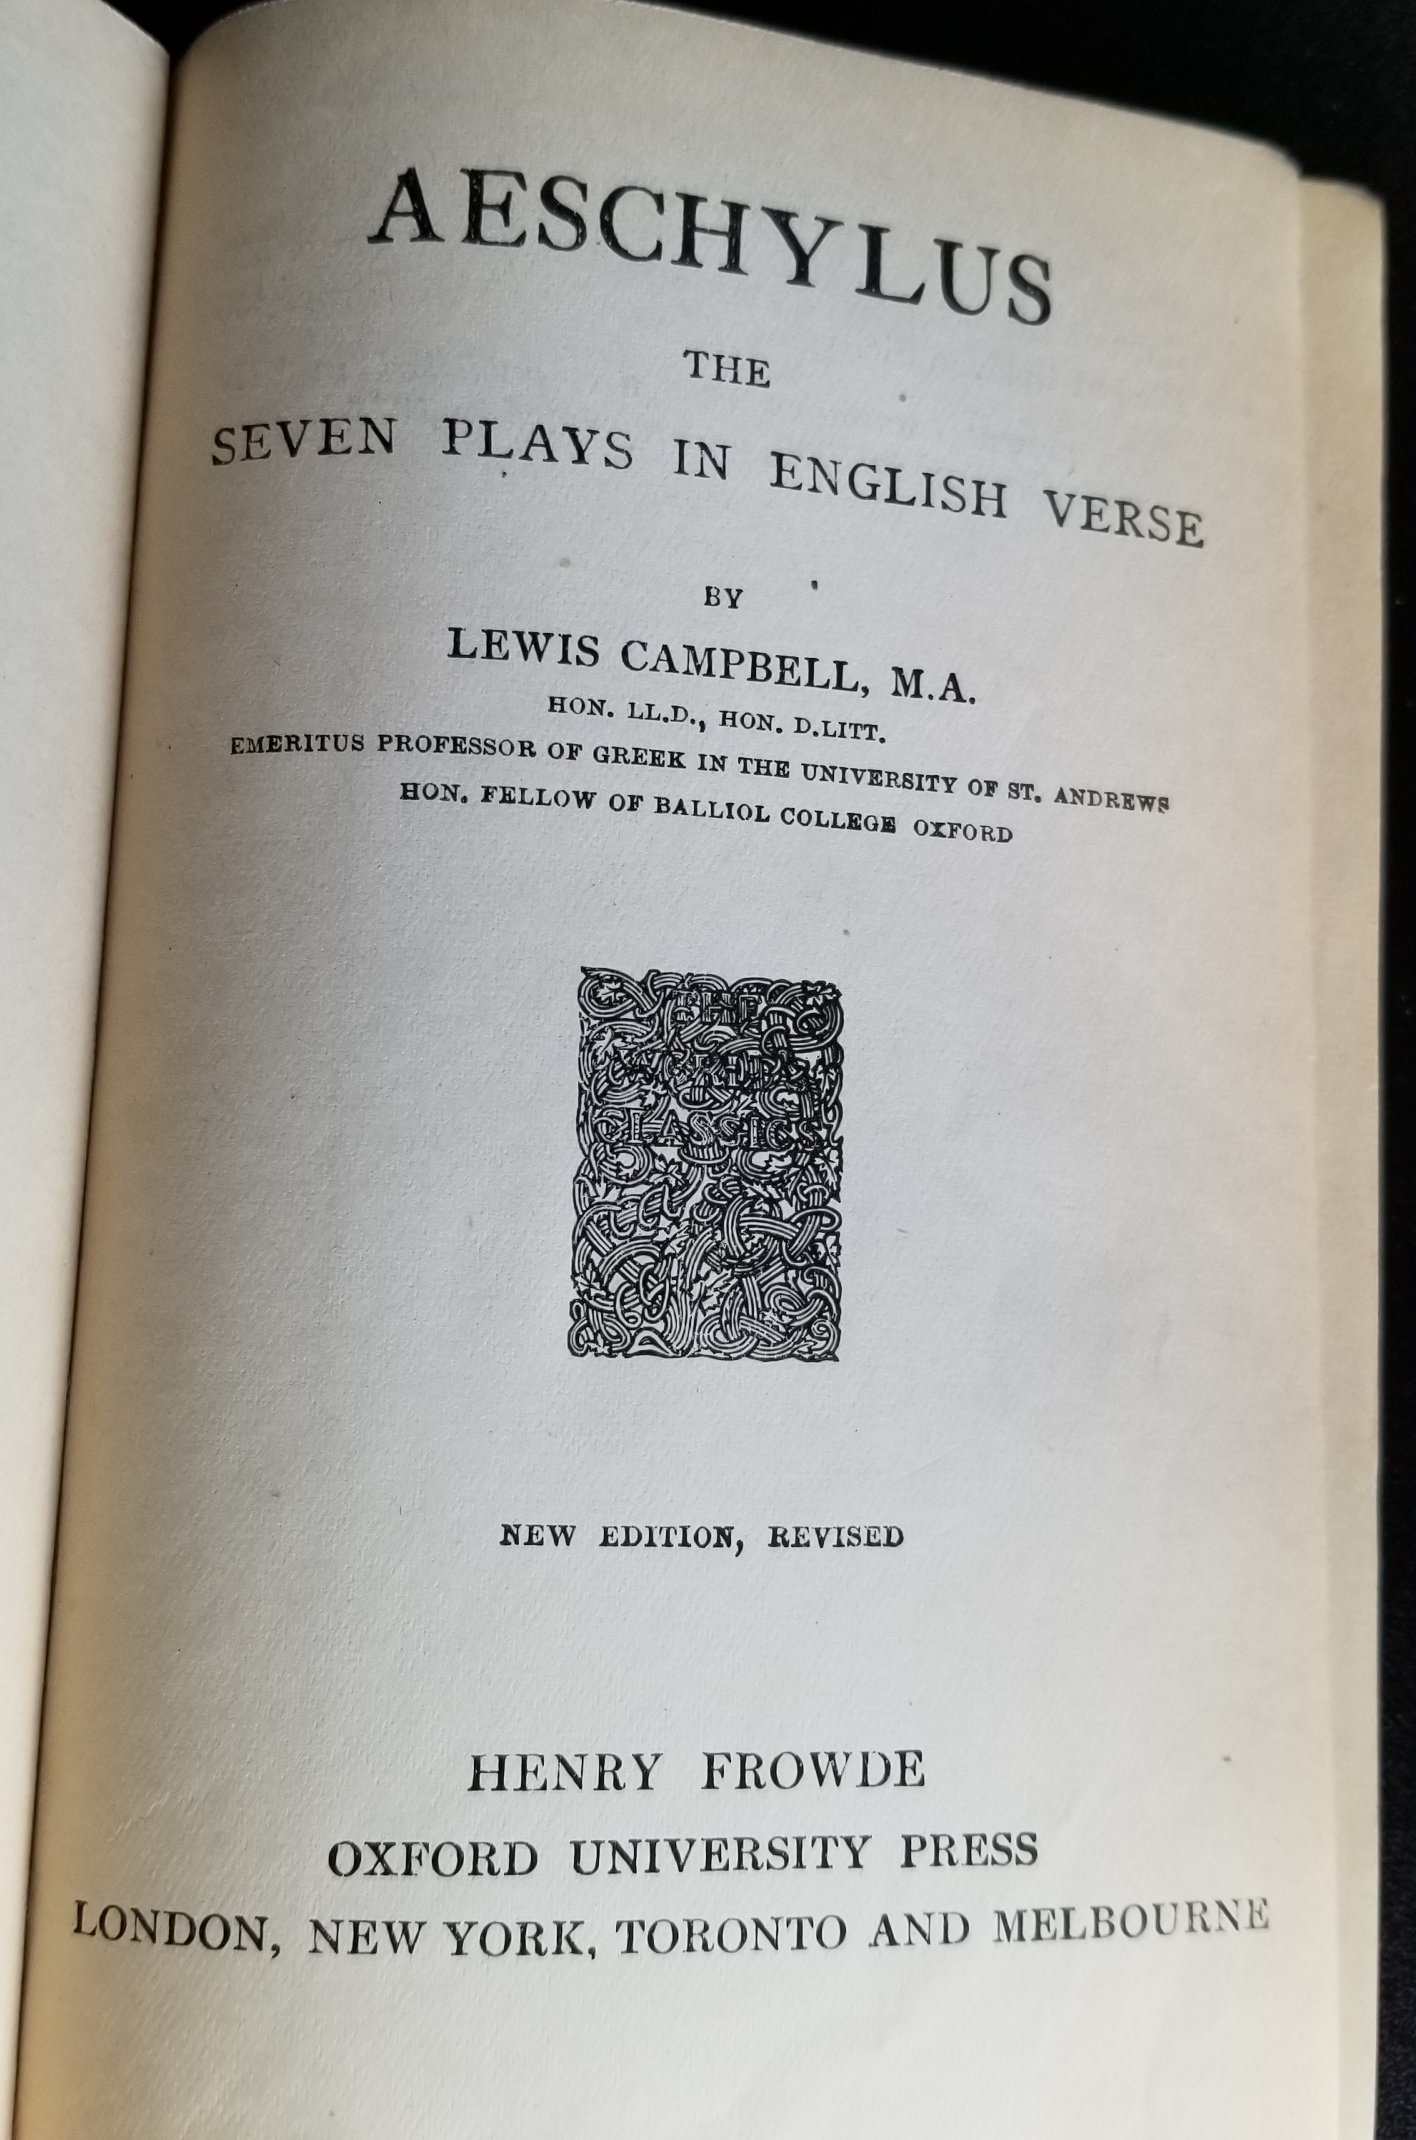 Image for Aeschylus. The Seven Plays in English Verse.  Lewis Campbell.